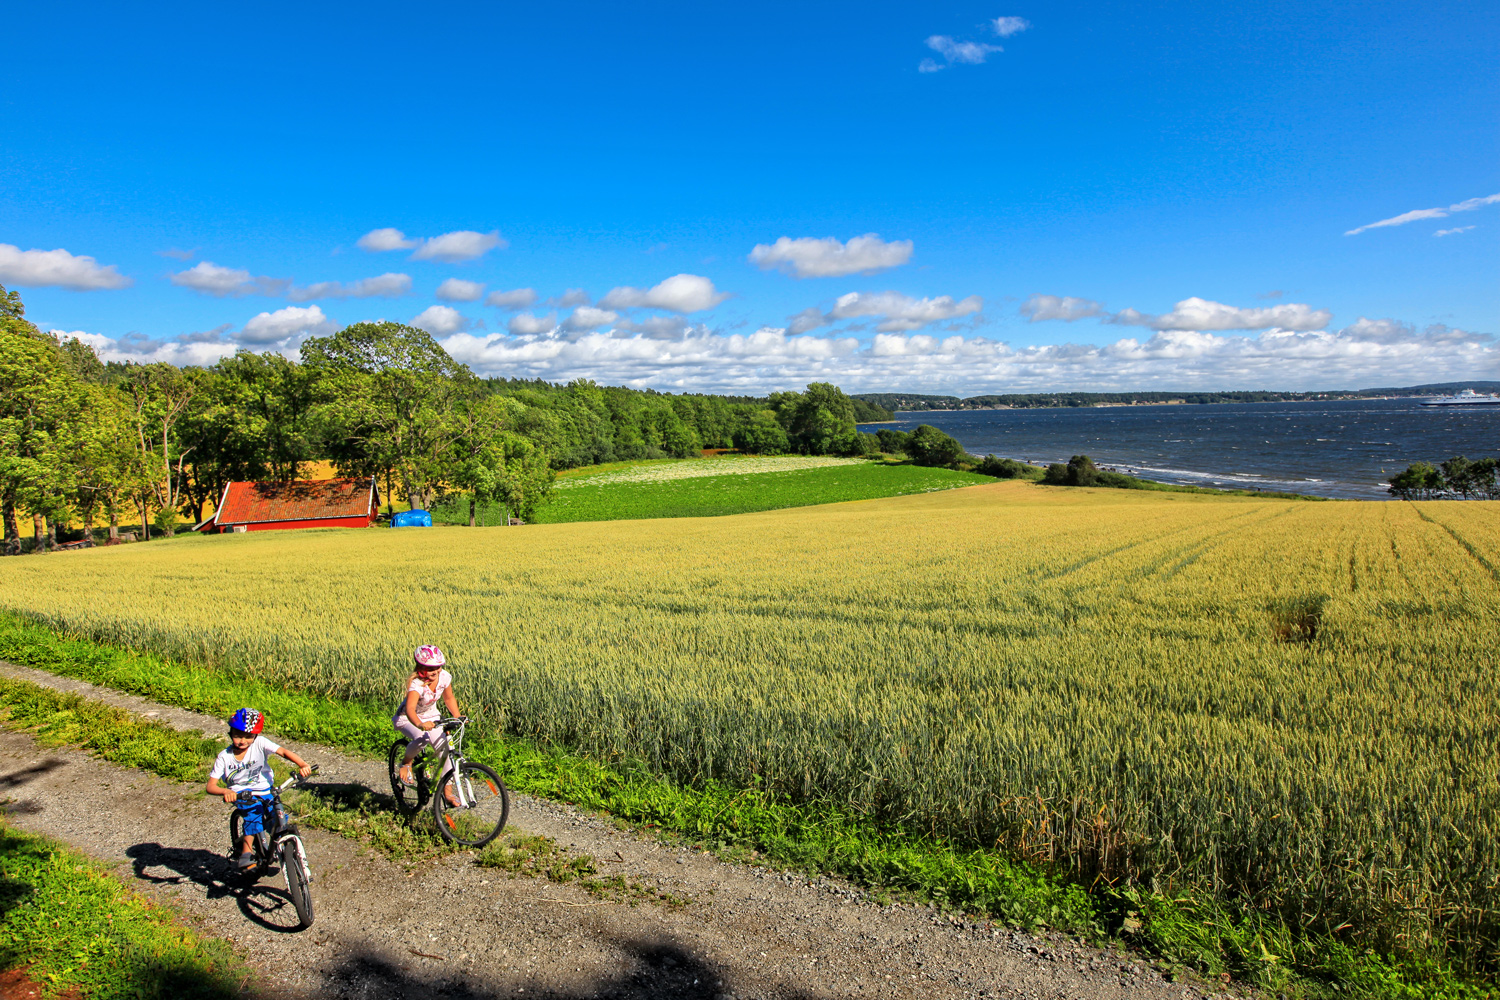 Cycling is definitely the ideal way to travel when on Jeløya. There are many narrow roads and paths that crisscross the whole island.